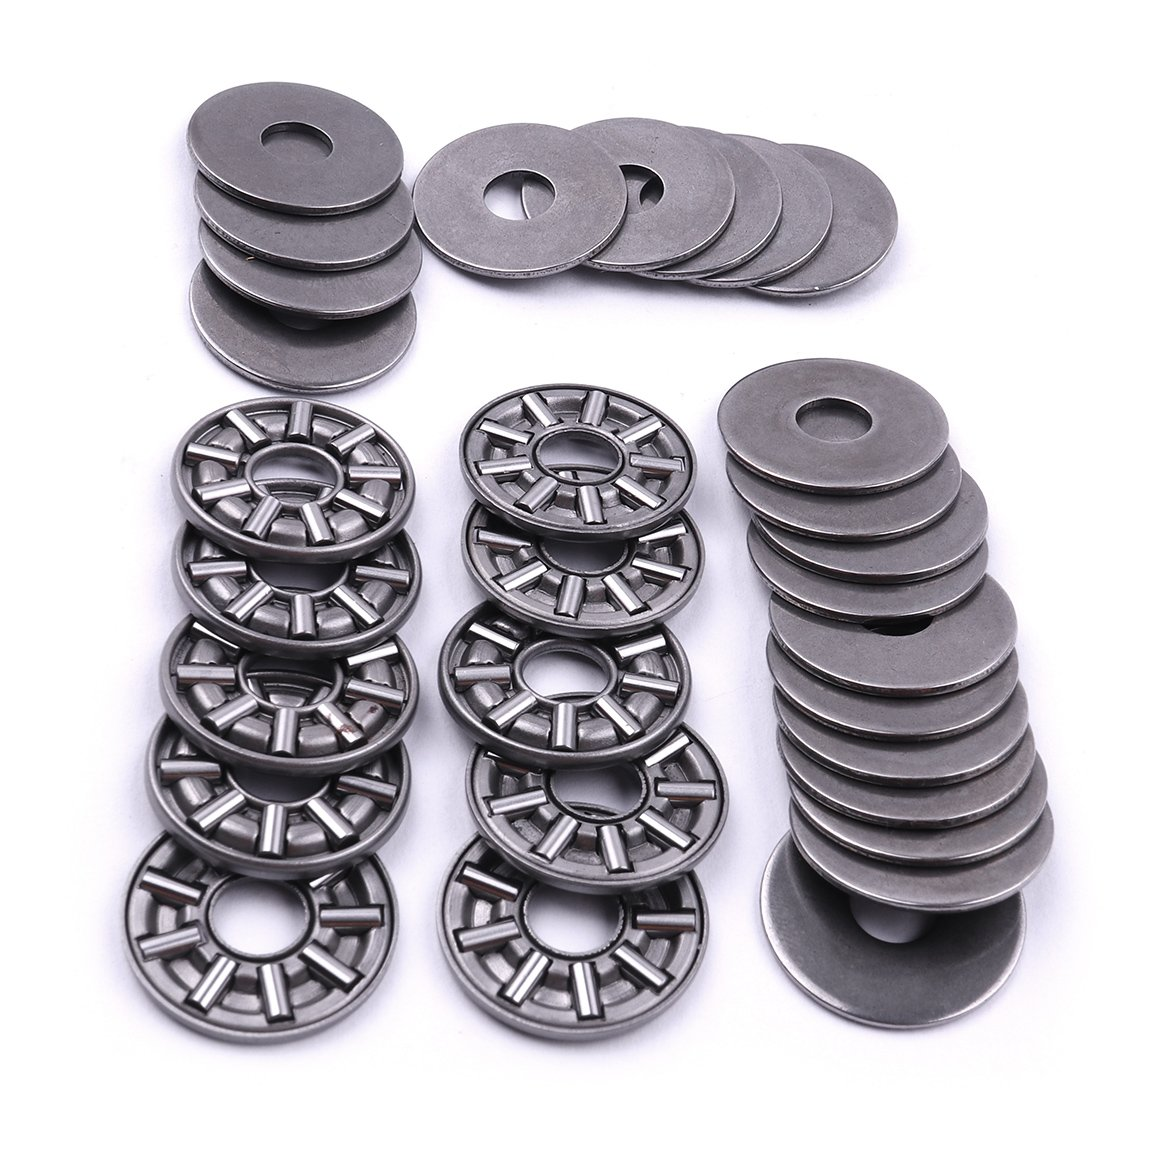 ATOPLEE AXK0819 2AS Thrust Needle Roller Bearings 1pc Cage Needle 2pcs Washers 8x19mm 10pcs